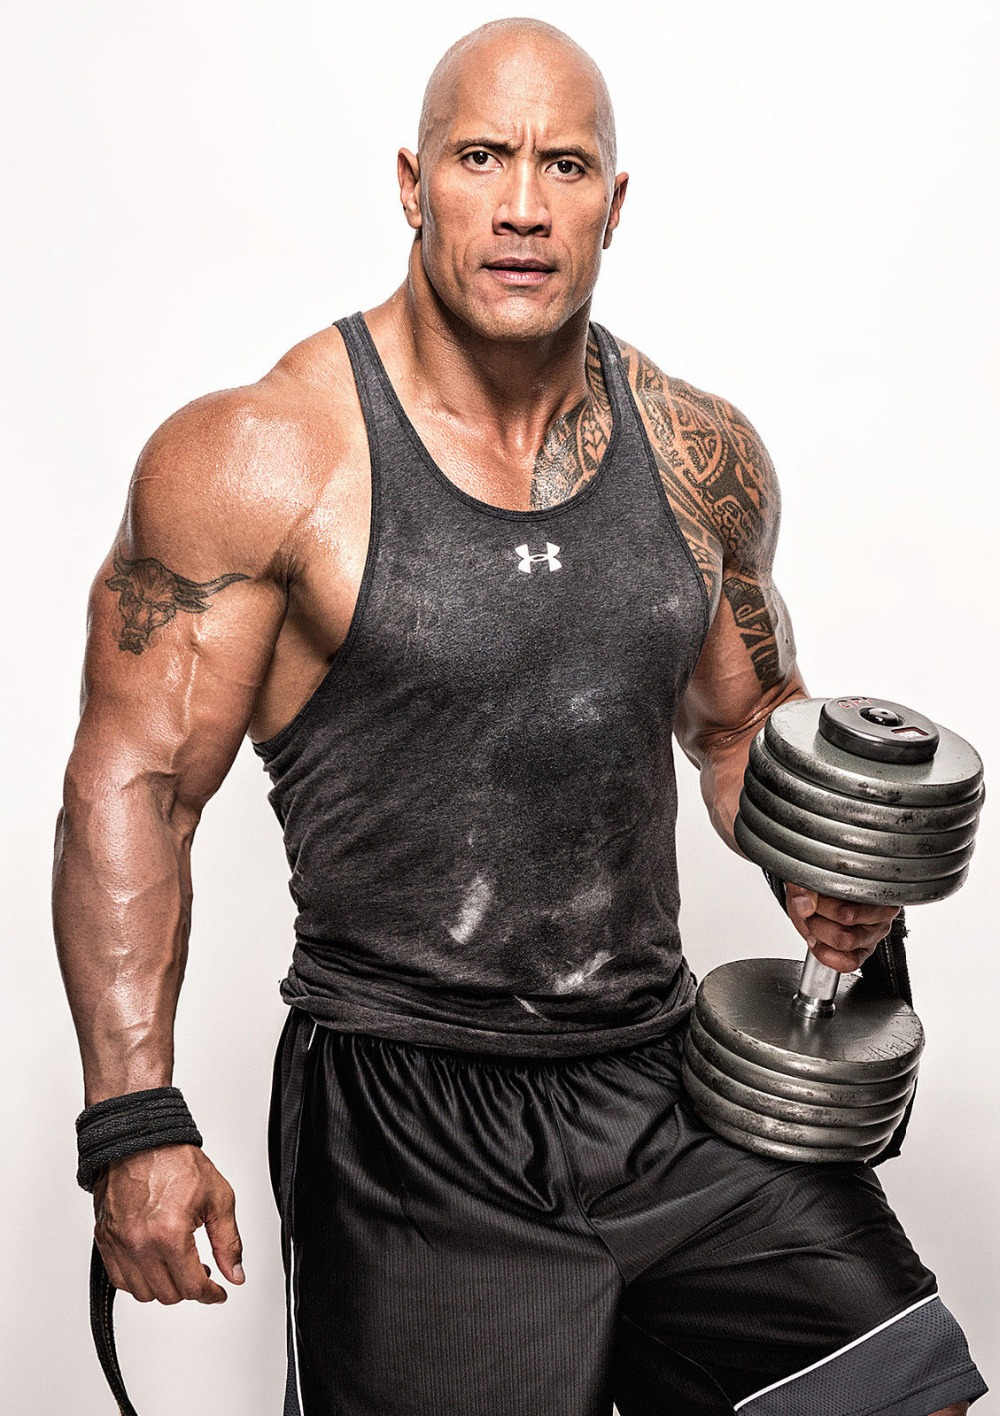 Us 2 76 25 Off The Rock Dwayne Johnson Muscle Bodybuildin Silk Poster Print Fitness Inspirational Picture For Room Wall Decor In Painting